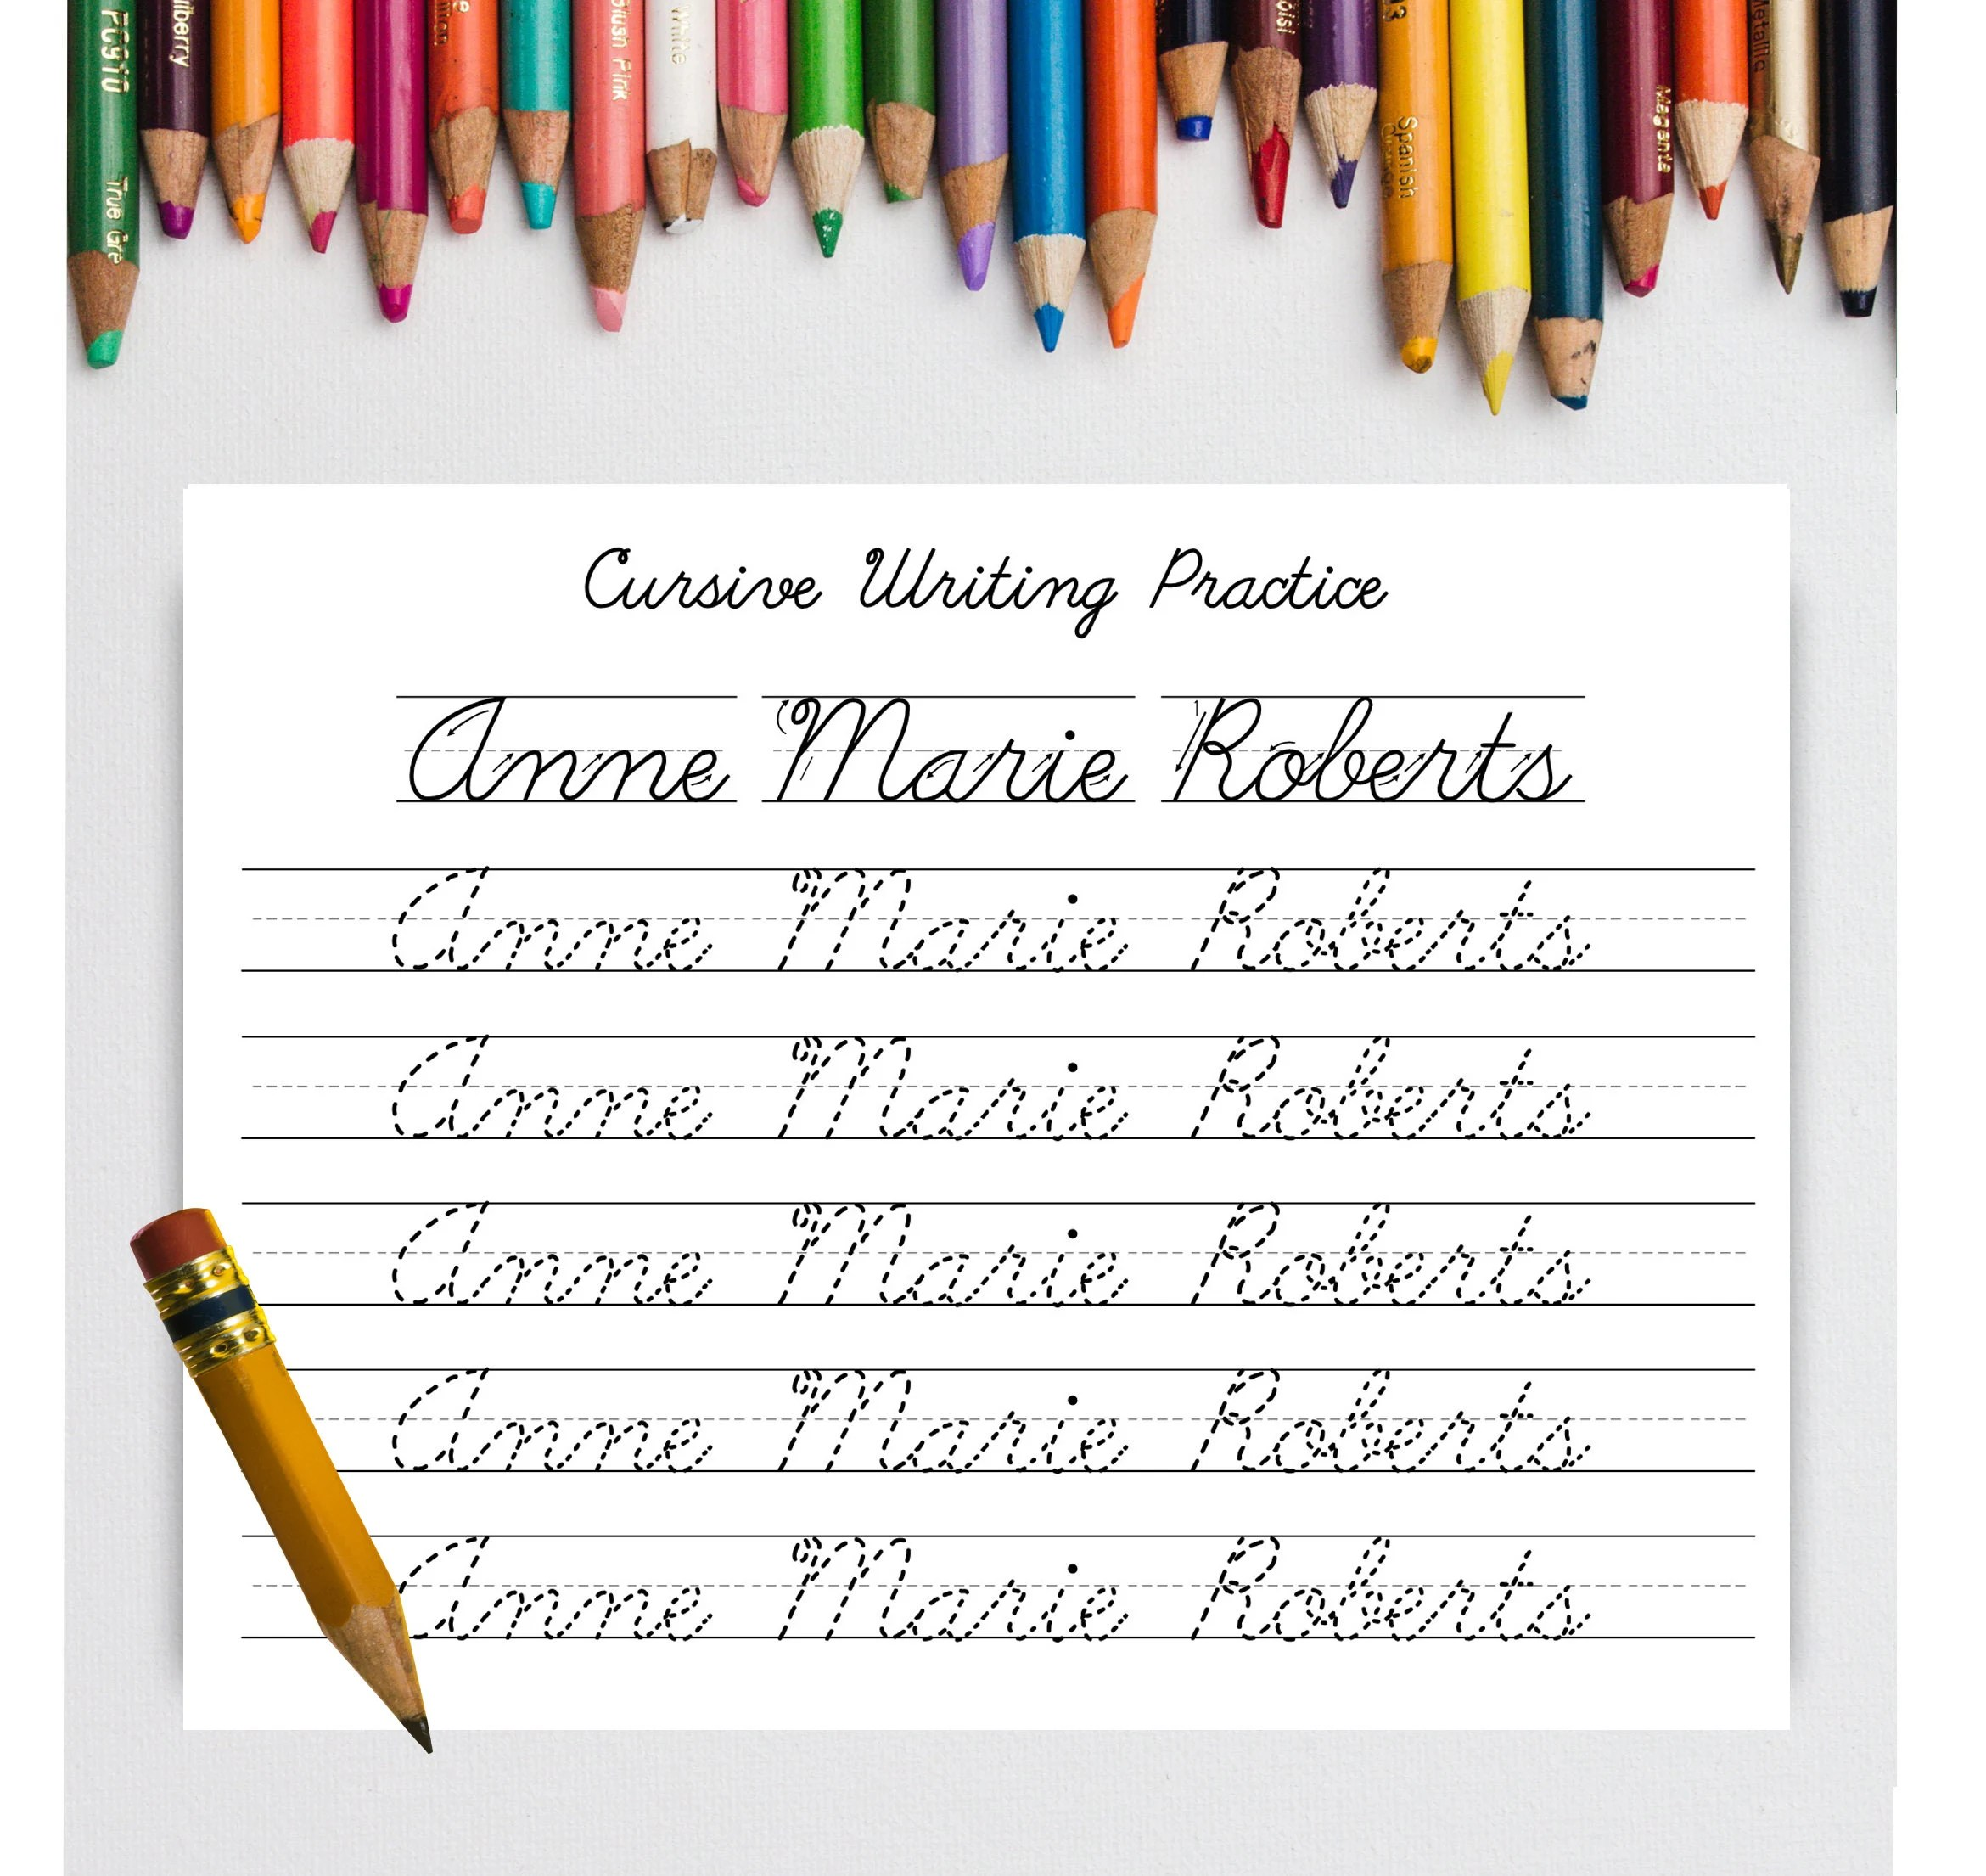 Personalized Cursive Writing Practice Worksheet Printable